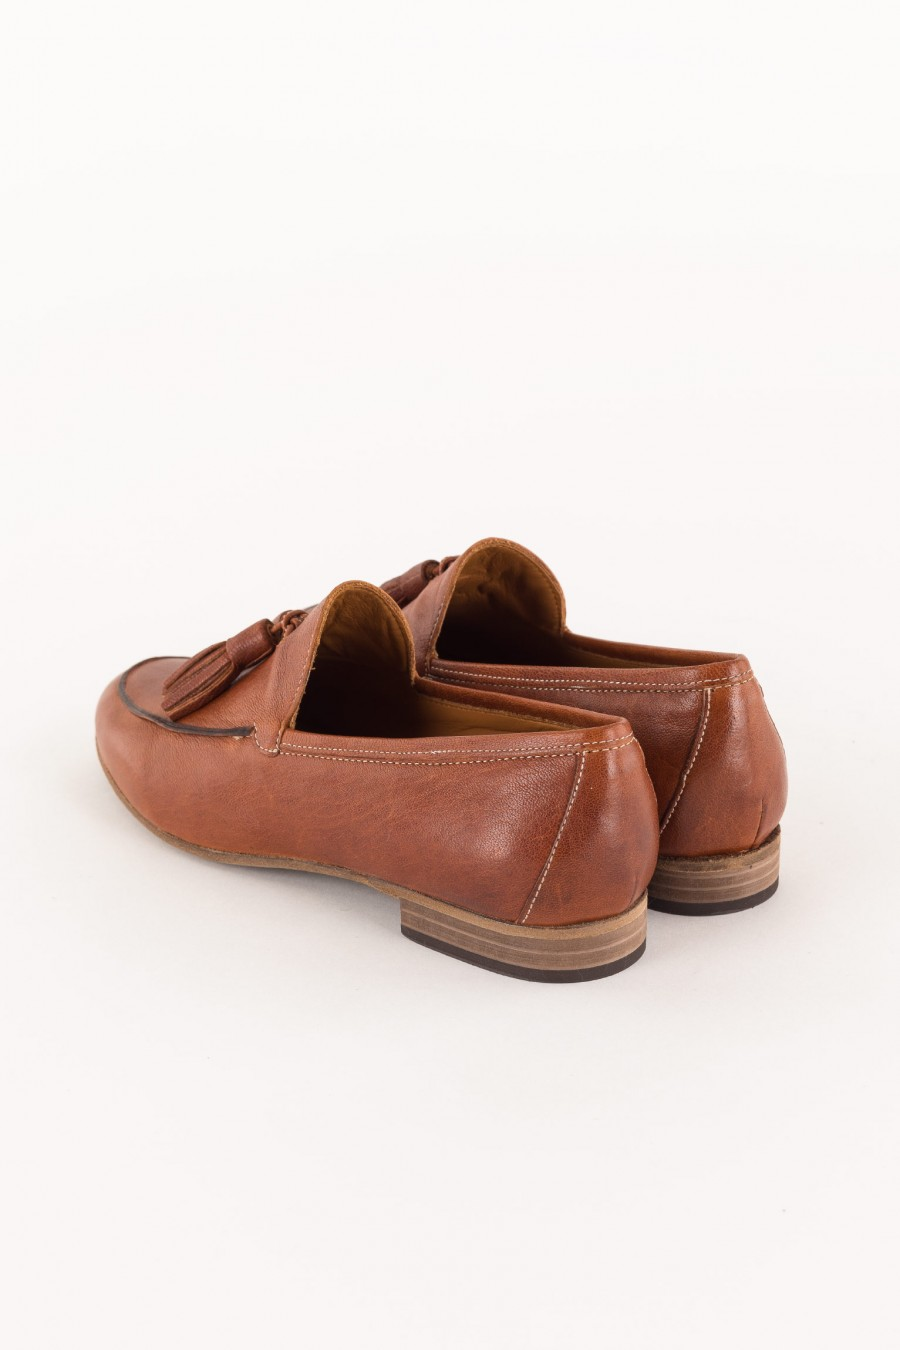 leather brick colored loafer with tassels